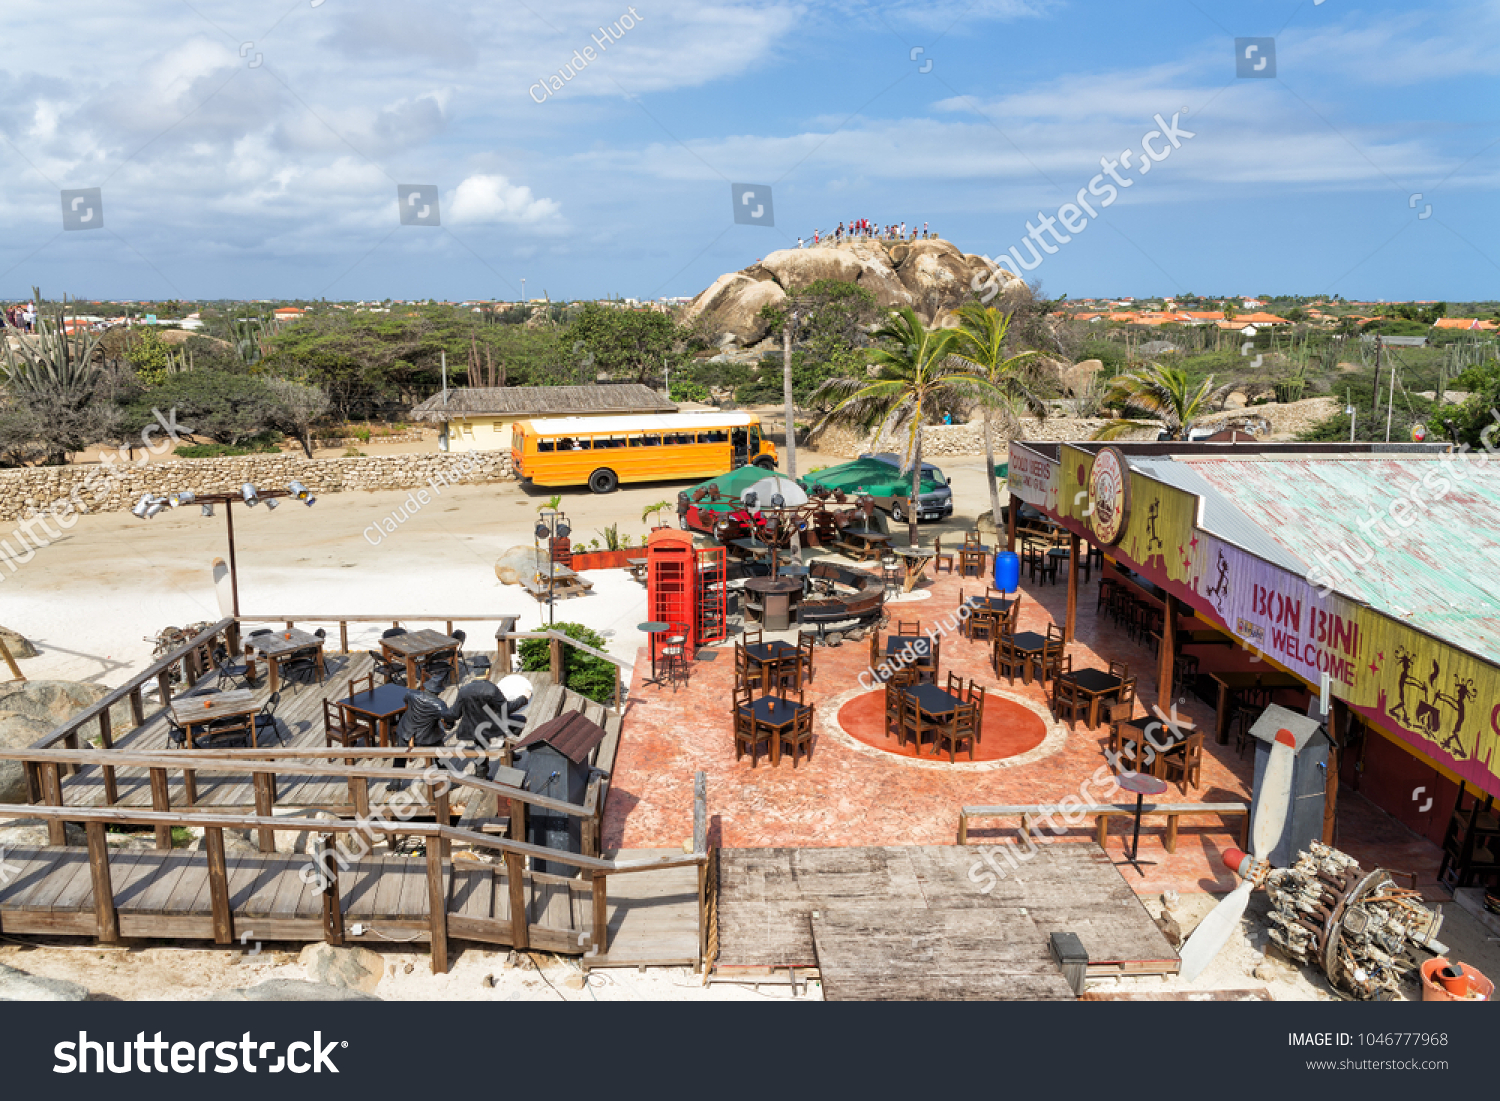 CASIBARI, ARUBA, CARIBBEAN - JANUARY 31, 2015: Tourists visit and climb the Casibari rock formation which offers a spectacular view from the top. There is a souvenir shop and cafeteria at the bottom.